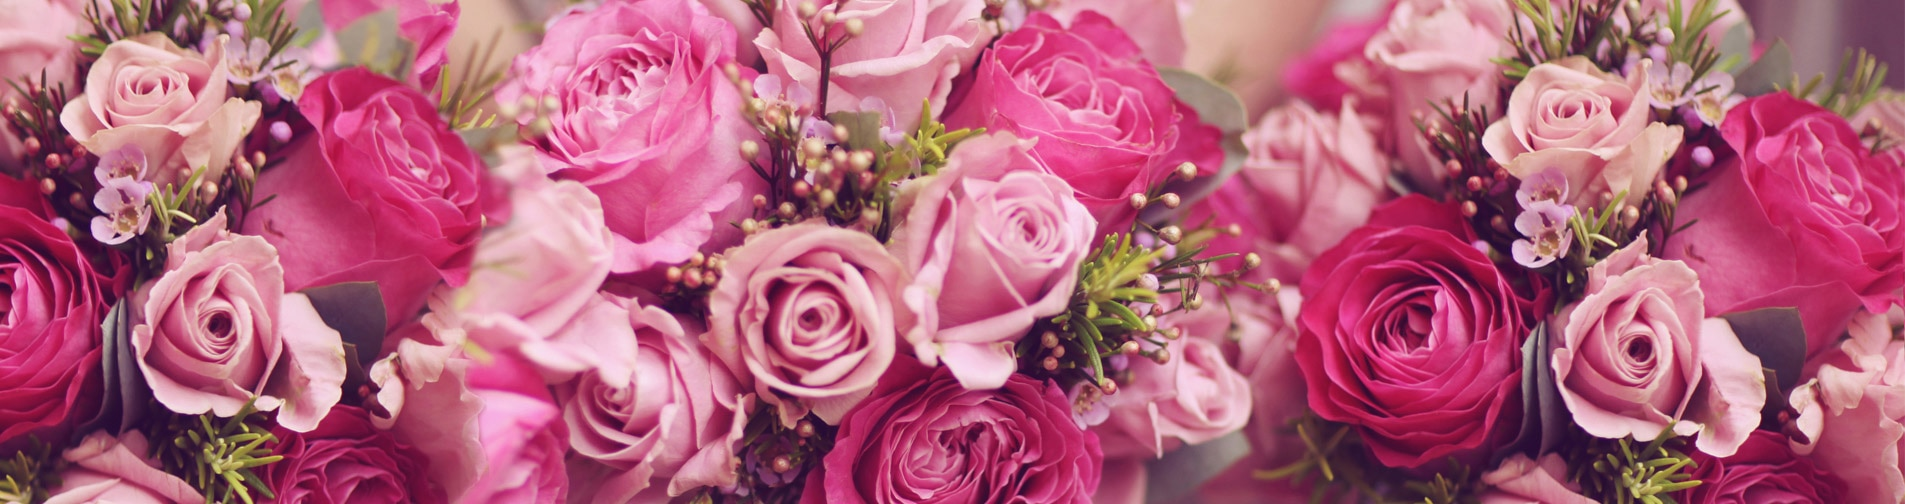 Banner image from Flower Station